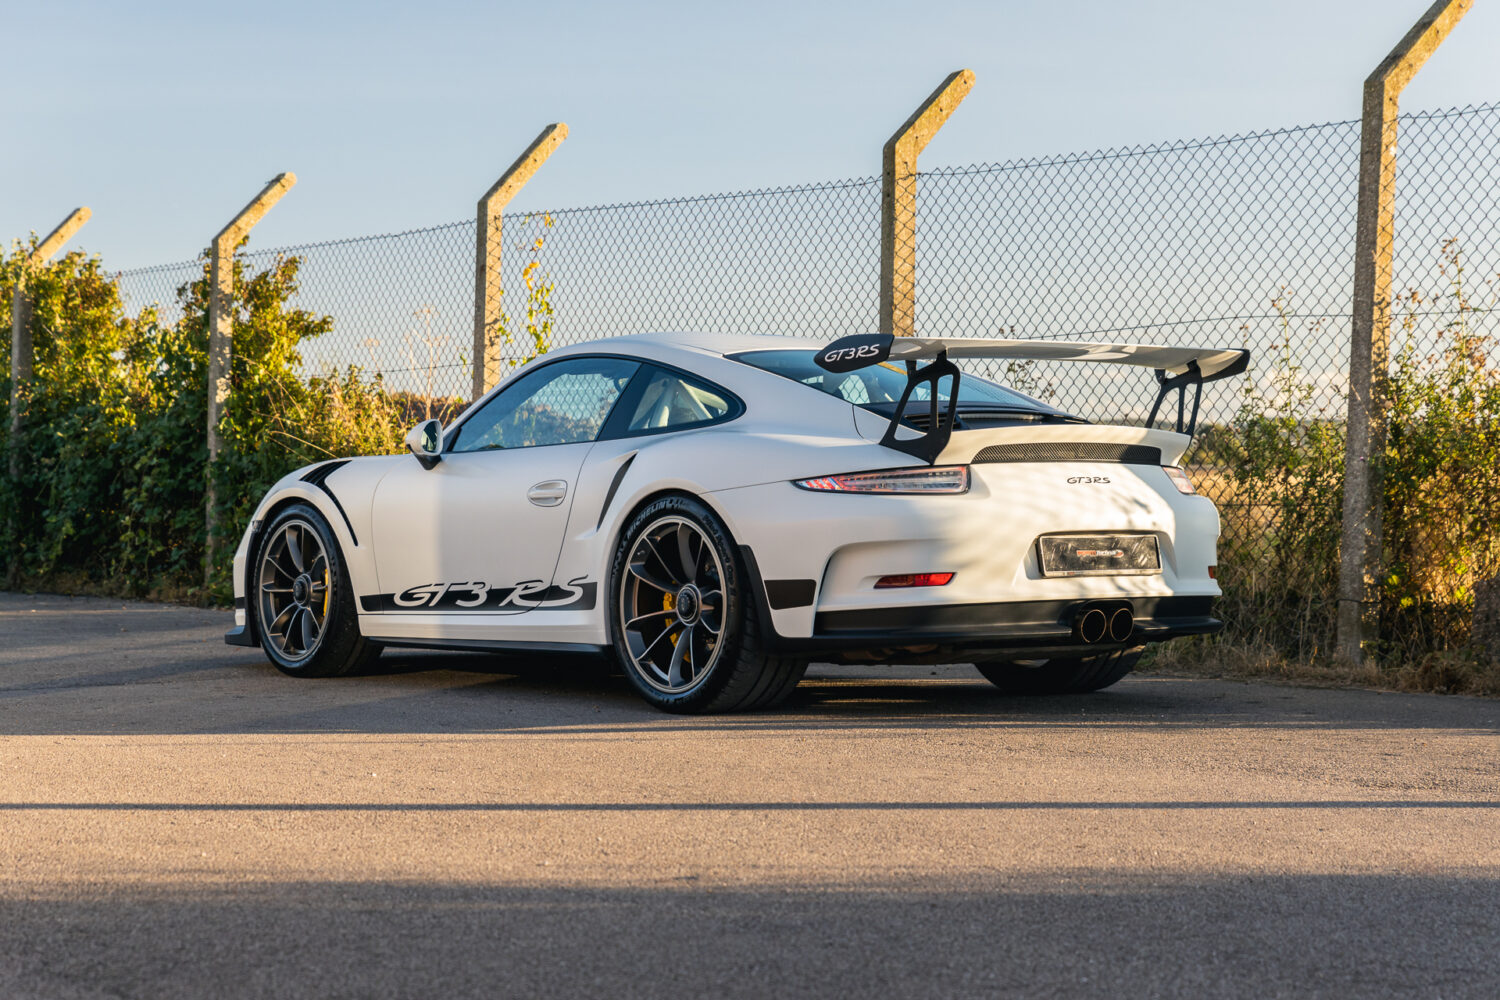 991.1 GT3 RS 60